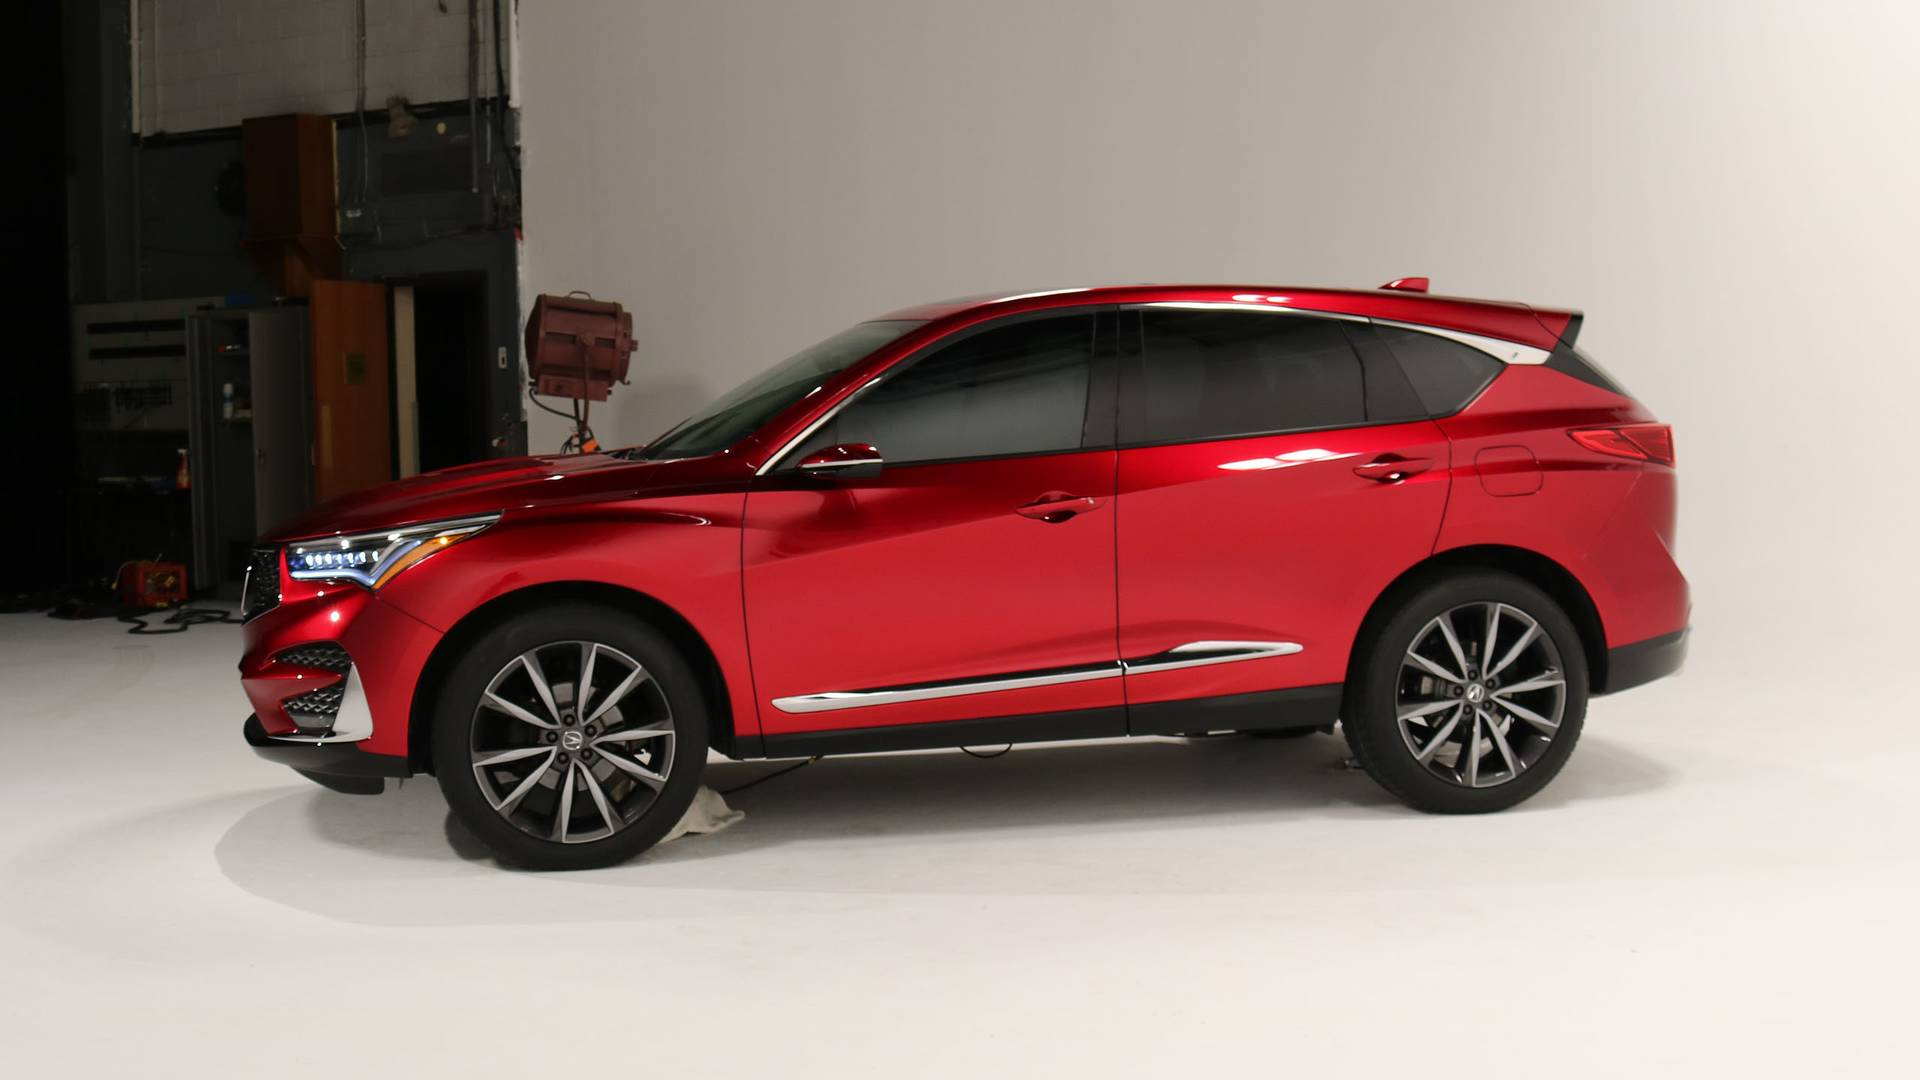 2019 Rdx Redesign >> NAIAS - 2019 Acura RDX Concept is Production Ready